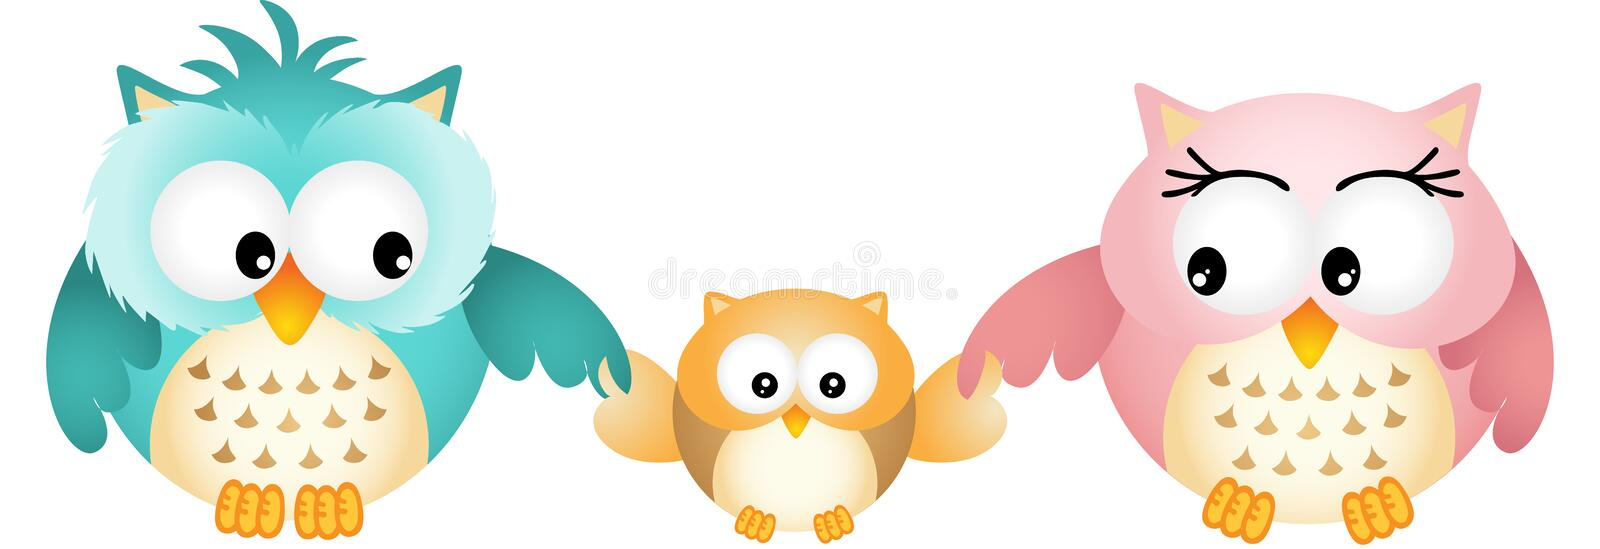 Owl Family heureux illustration stock